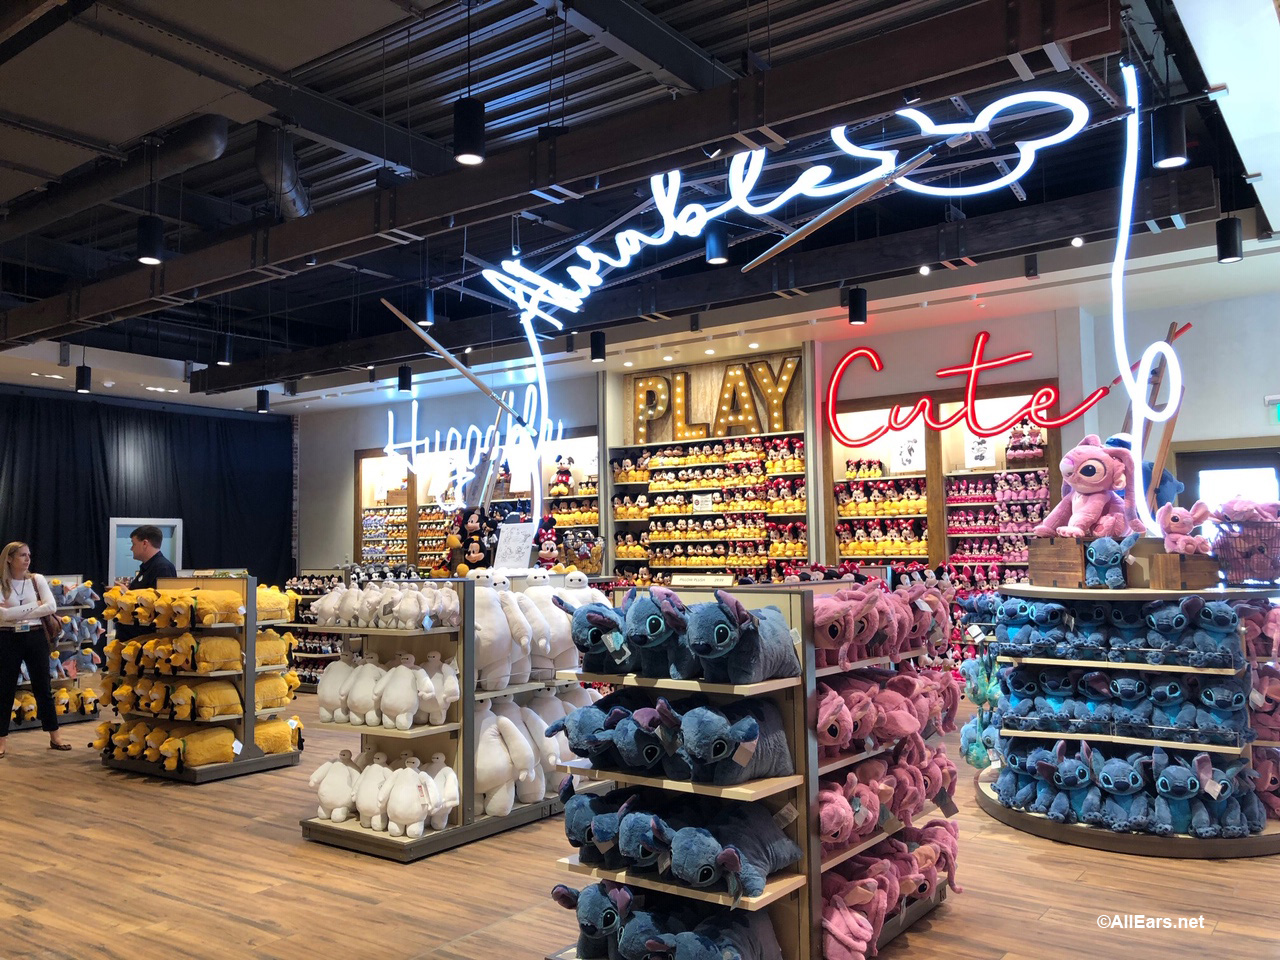 04f9b2306 Preview: Disney Springs' World of Disney Store Renovation! - AllEars.Net